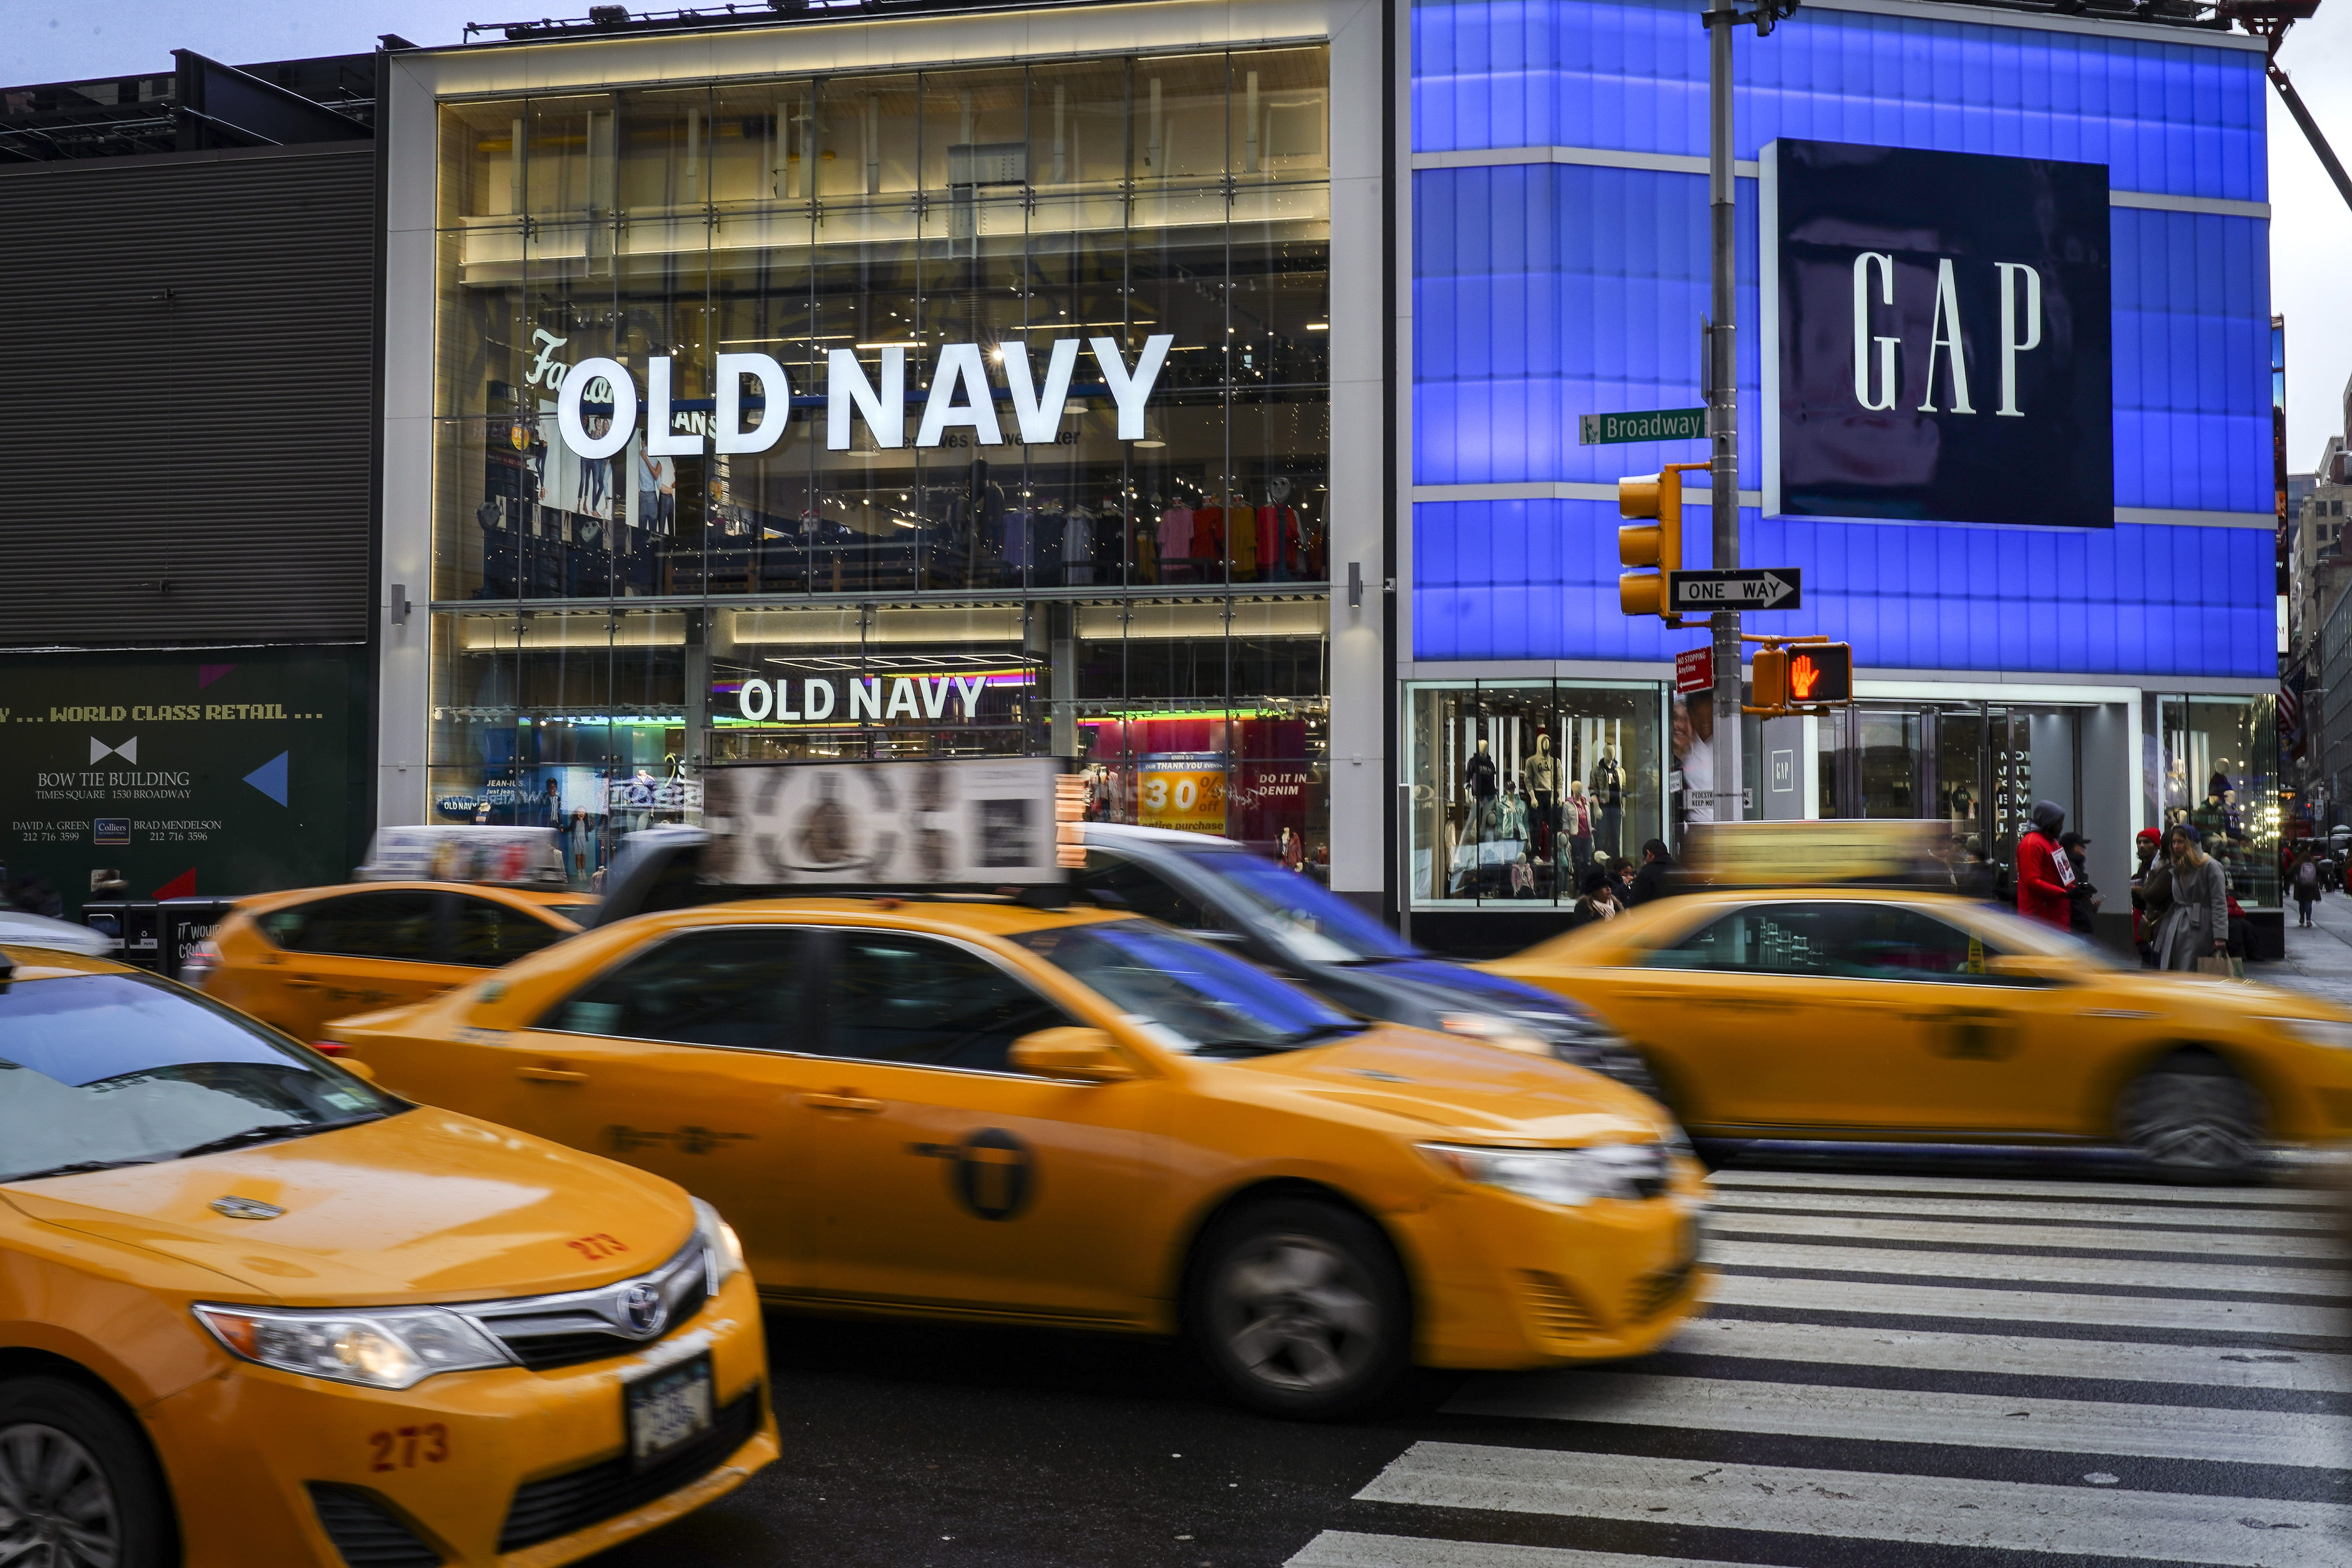 Old Navy shopper says she was grabbed, racially profiled in Canada shop